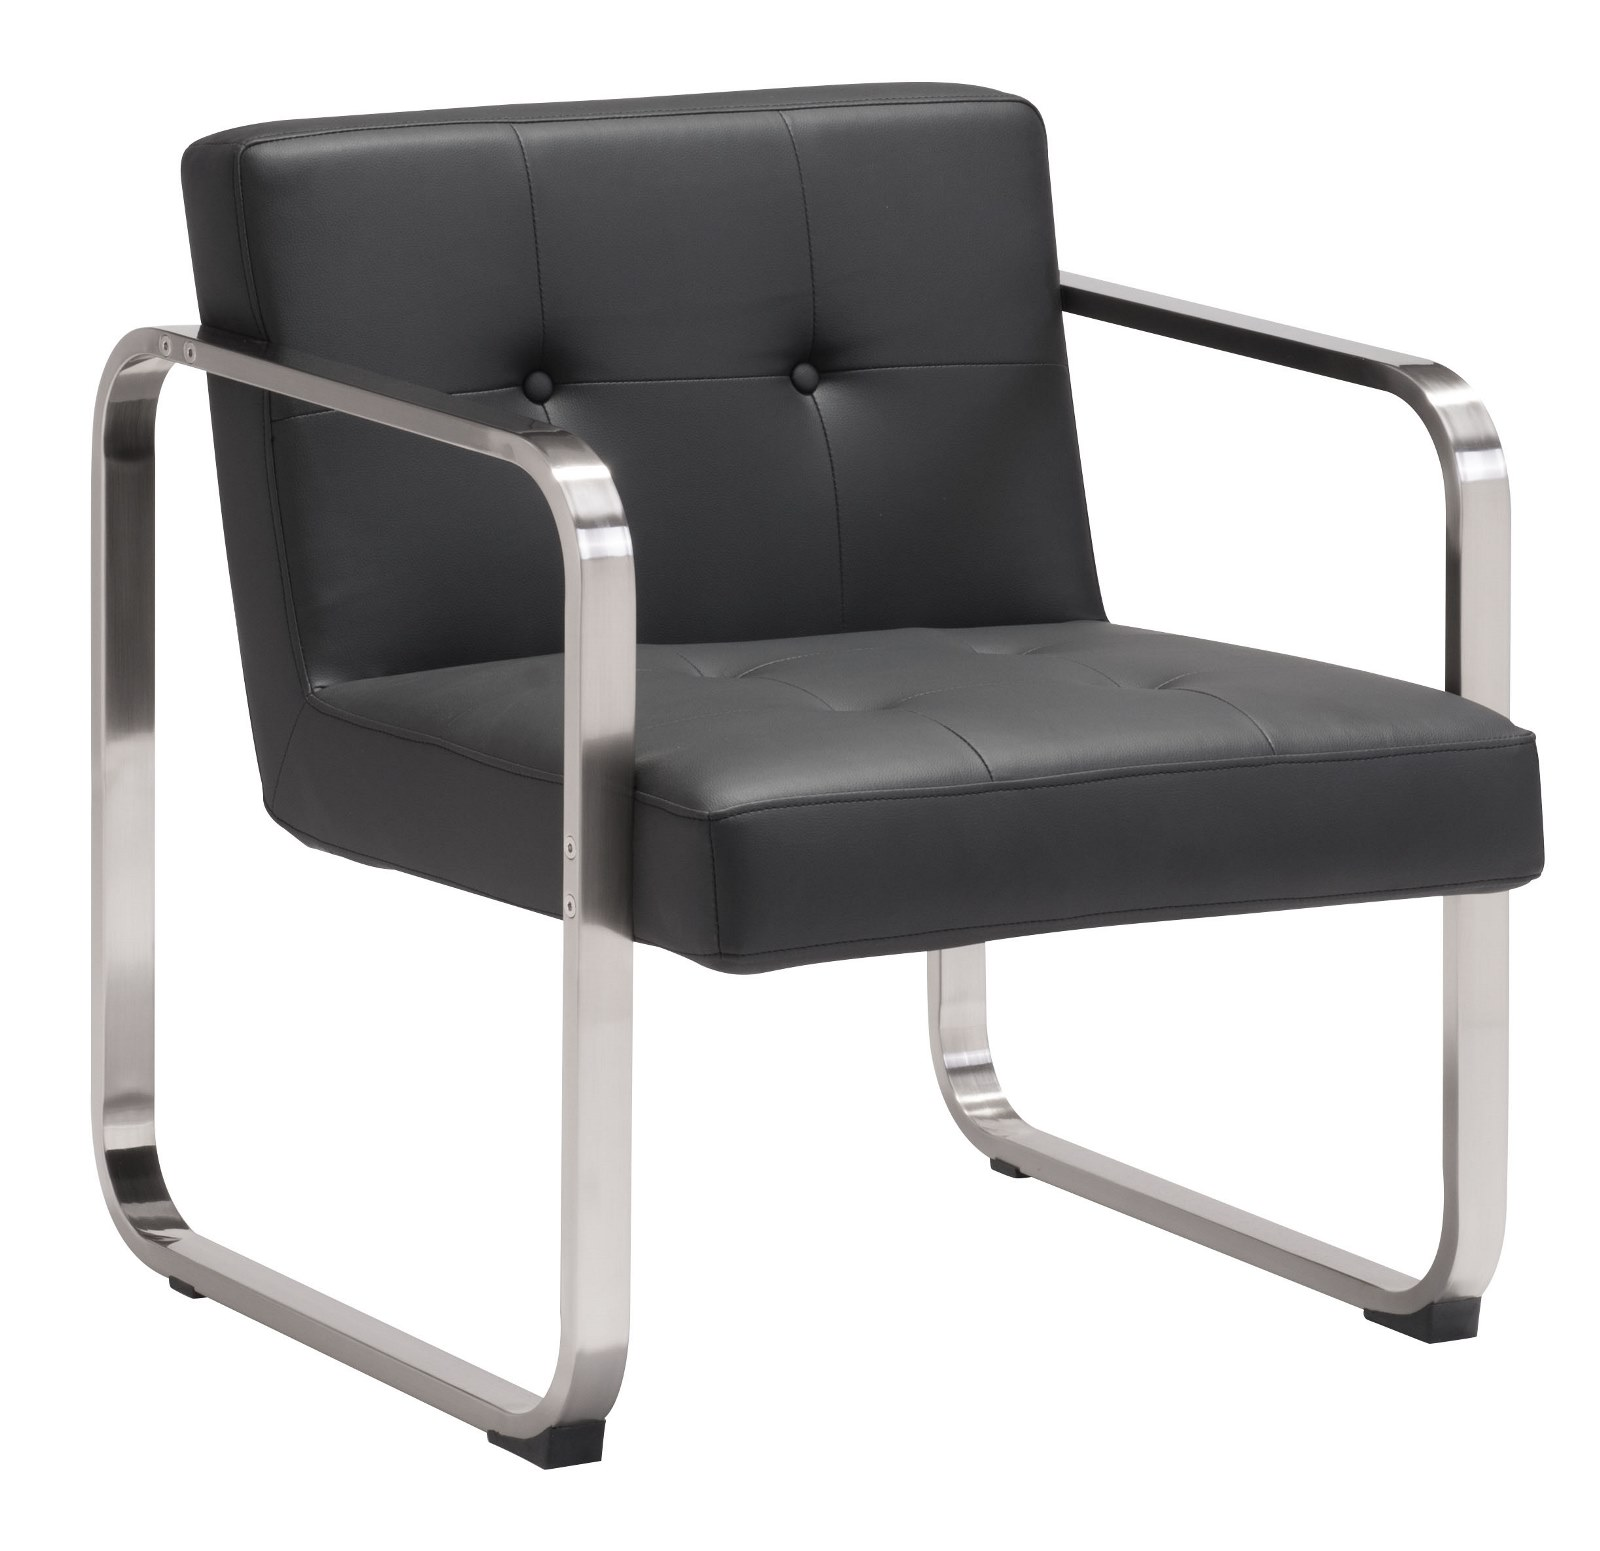 Modern Contemporary Living Room Arm Chair, Black Leatherette Brushed Stainless Steel